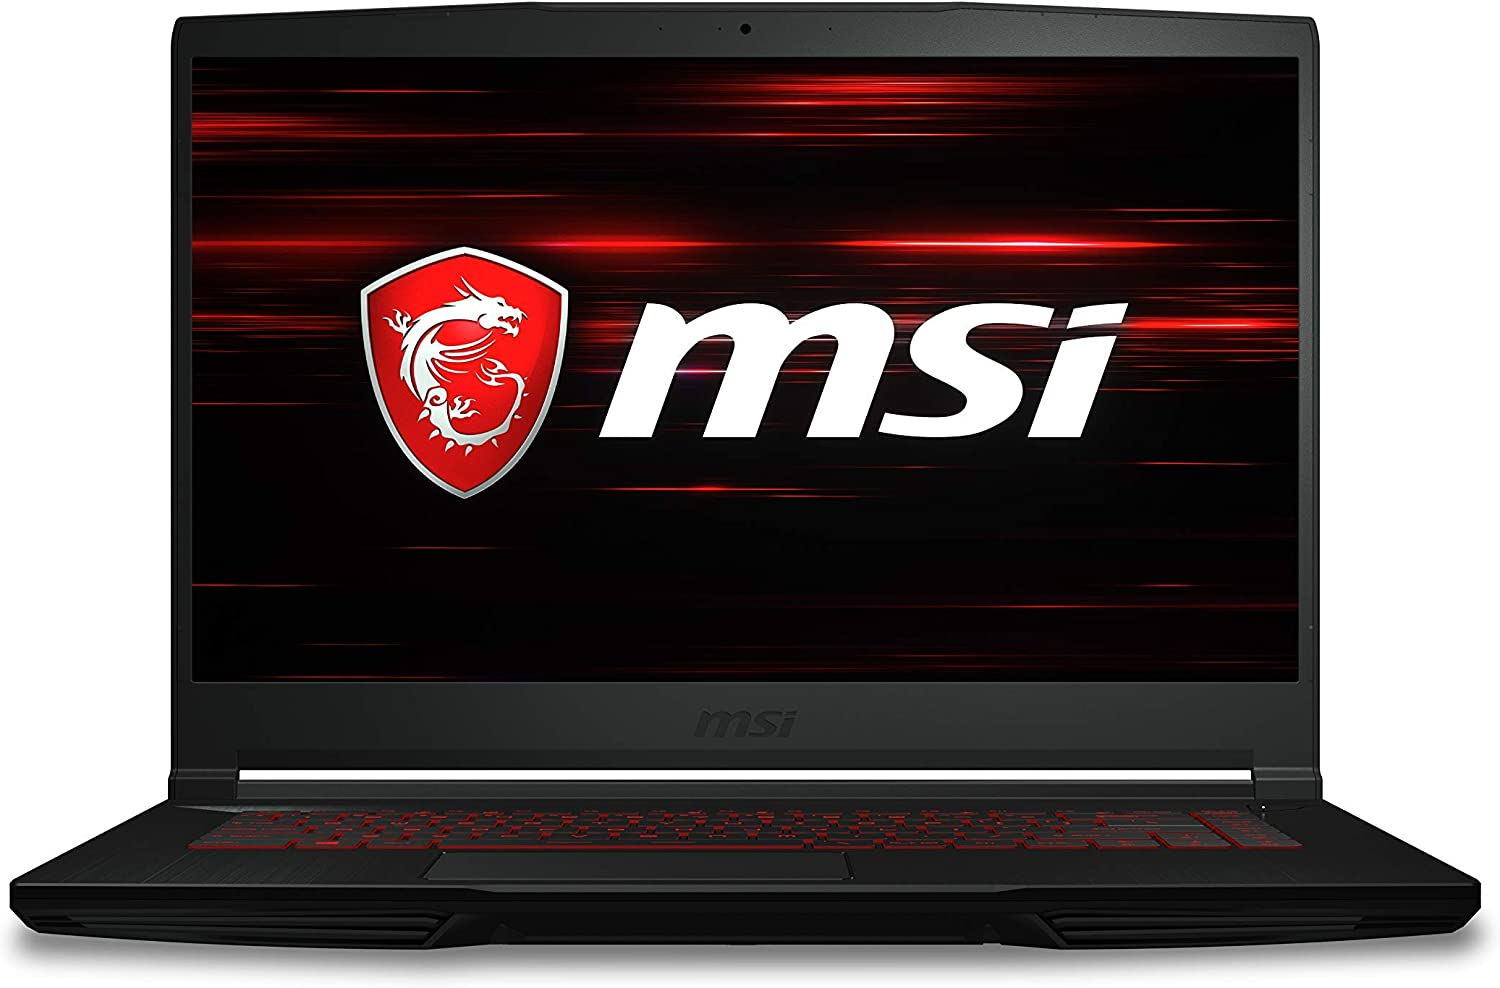 "MSI GF63 Thin 9RCX-818 15.6"" Gaming Laptop, Thin Bezel, Intel Core i7-9750H, NVIDIA GeForce GTX 1050 Ti, 8GB, 256GB NVMe SSD (Renewed)"